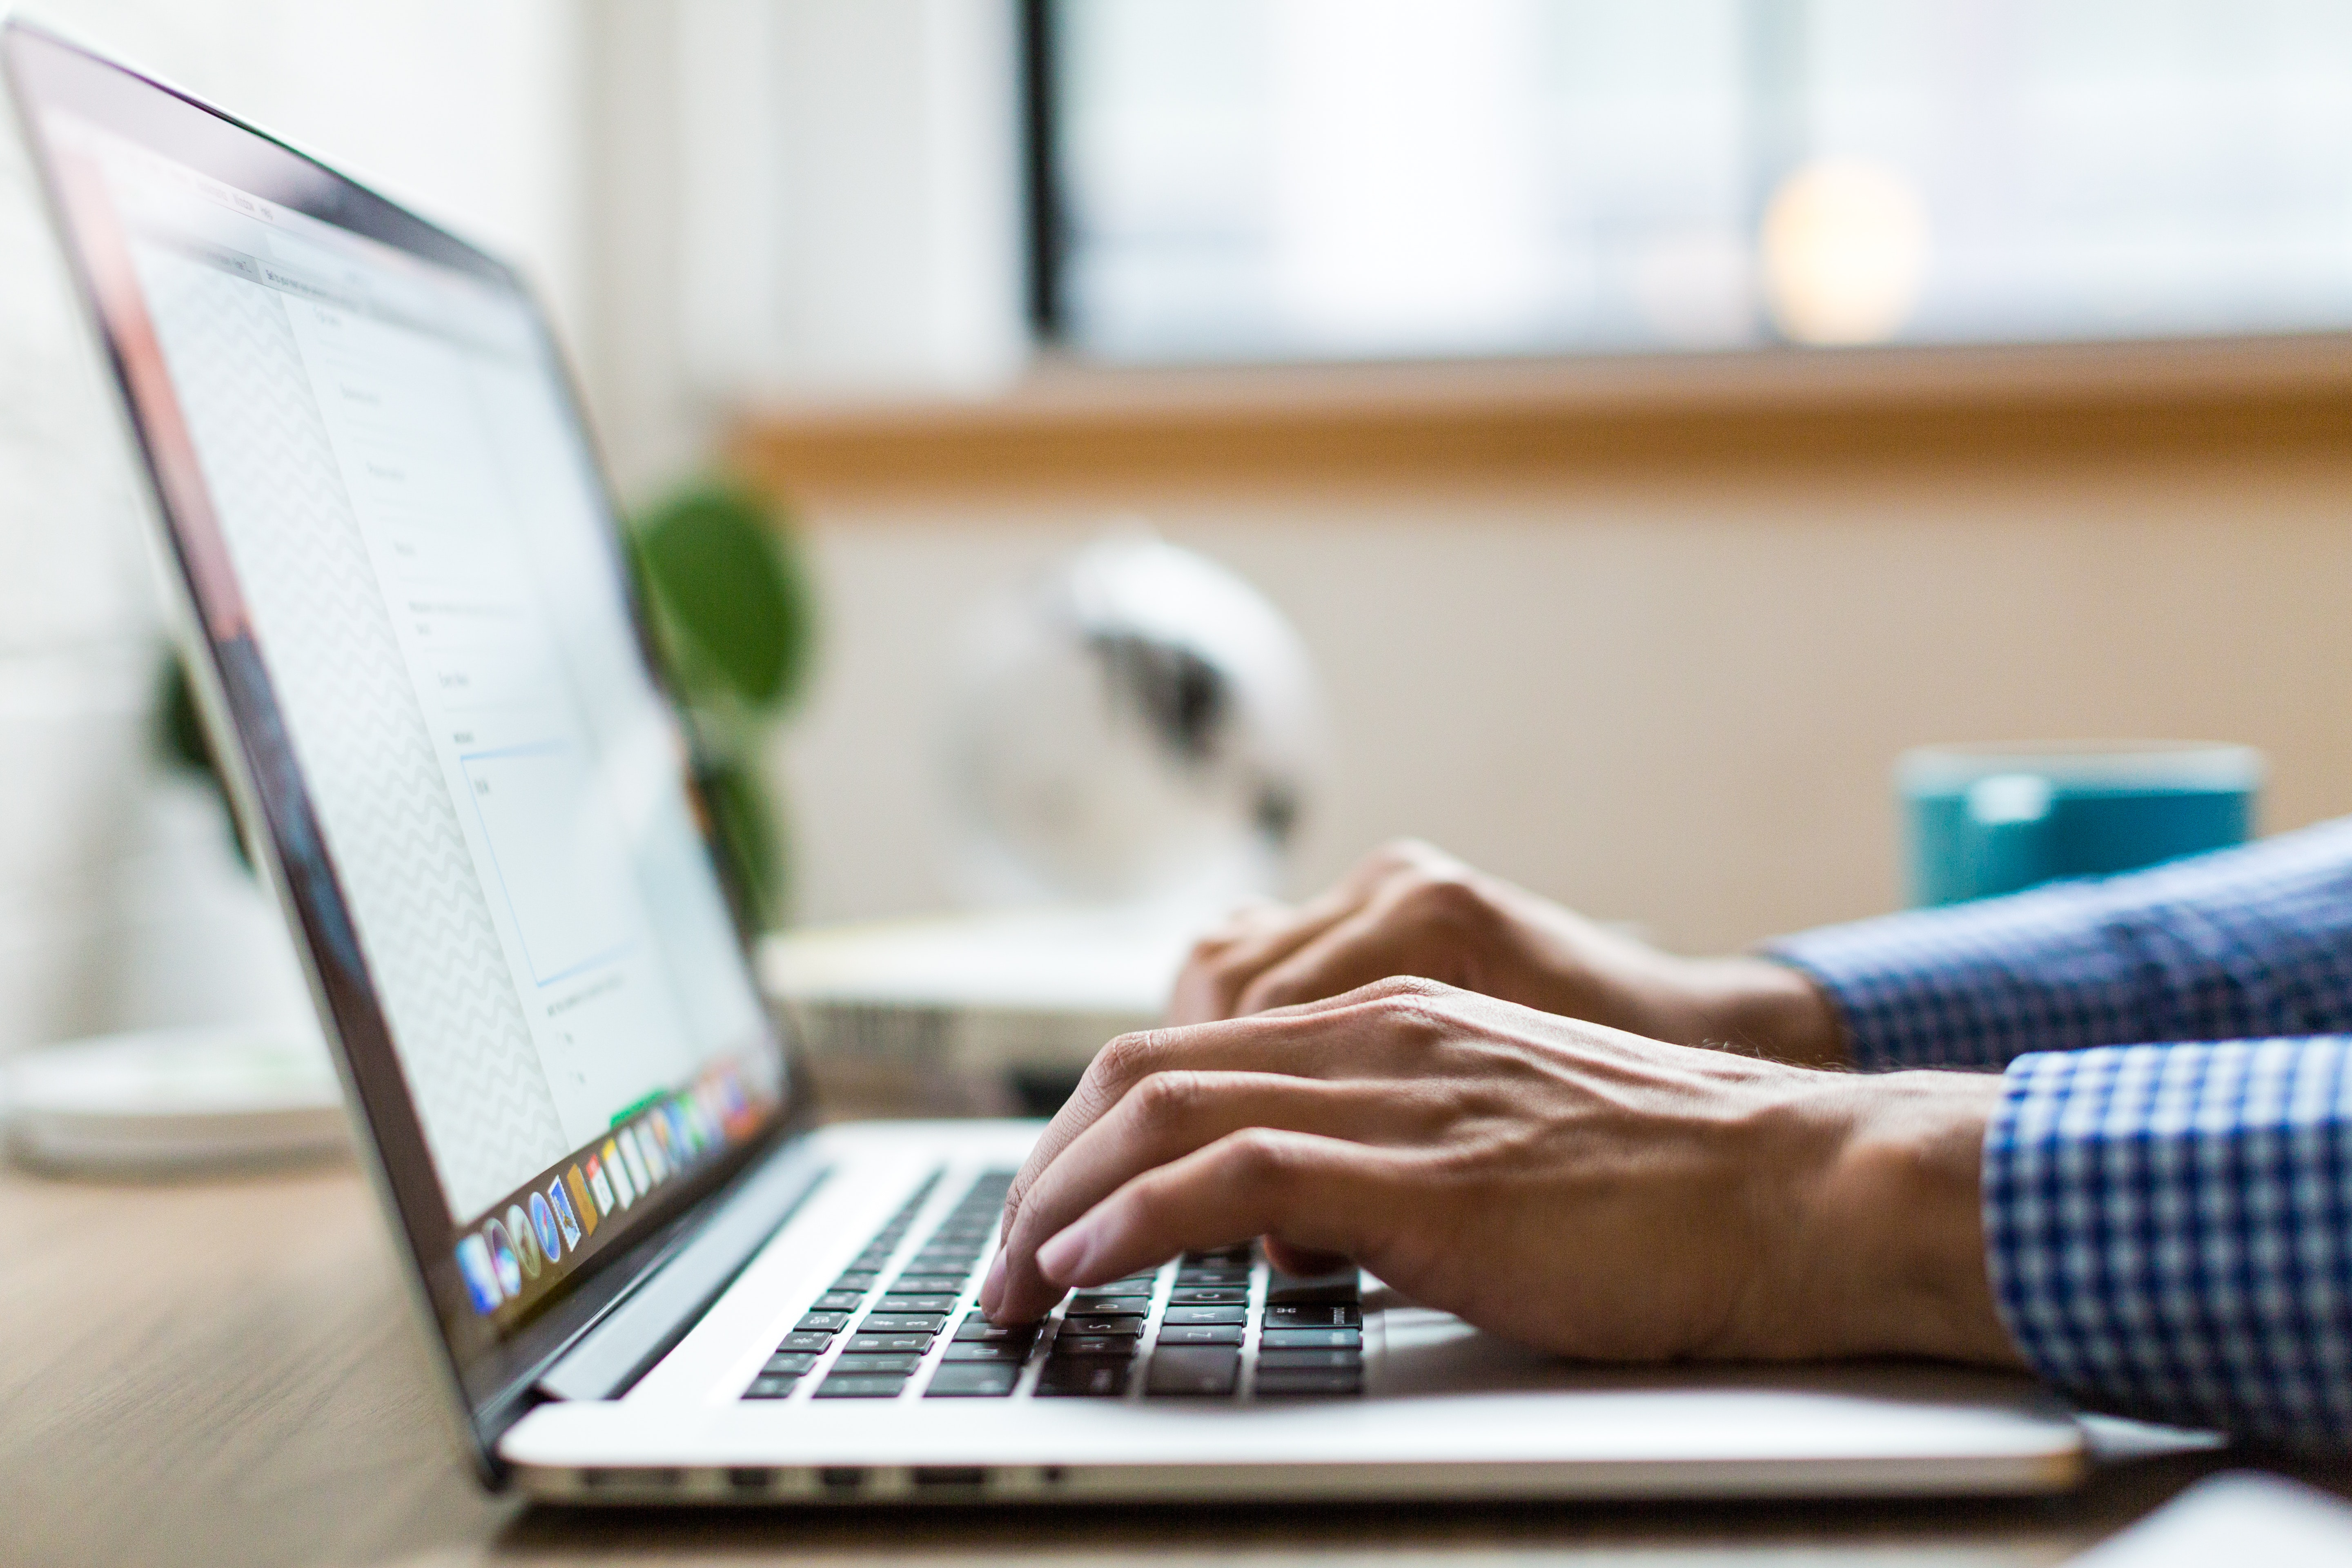 5 Best Free OCR Software Tools in 2019